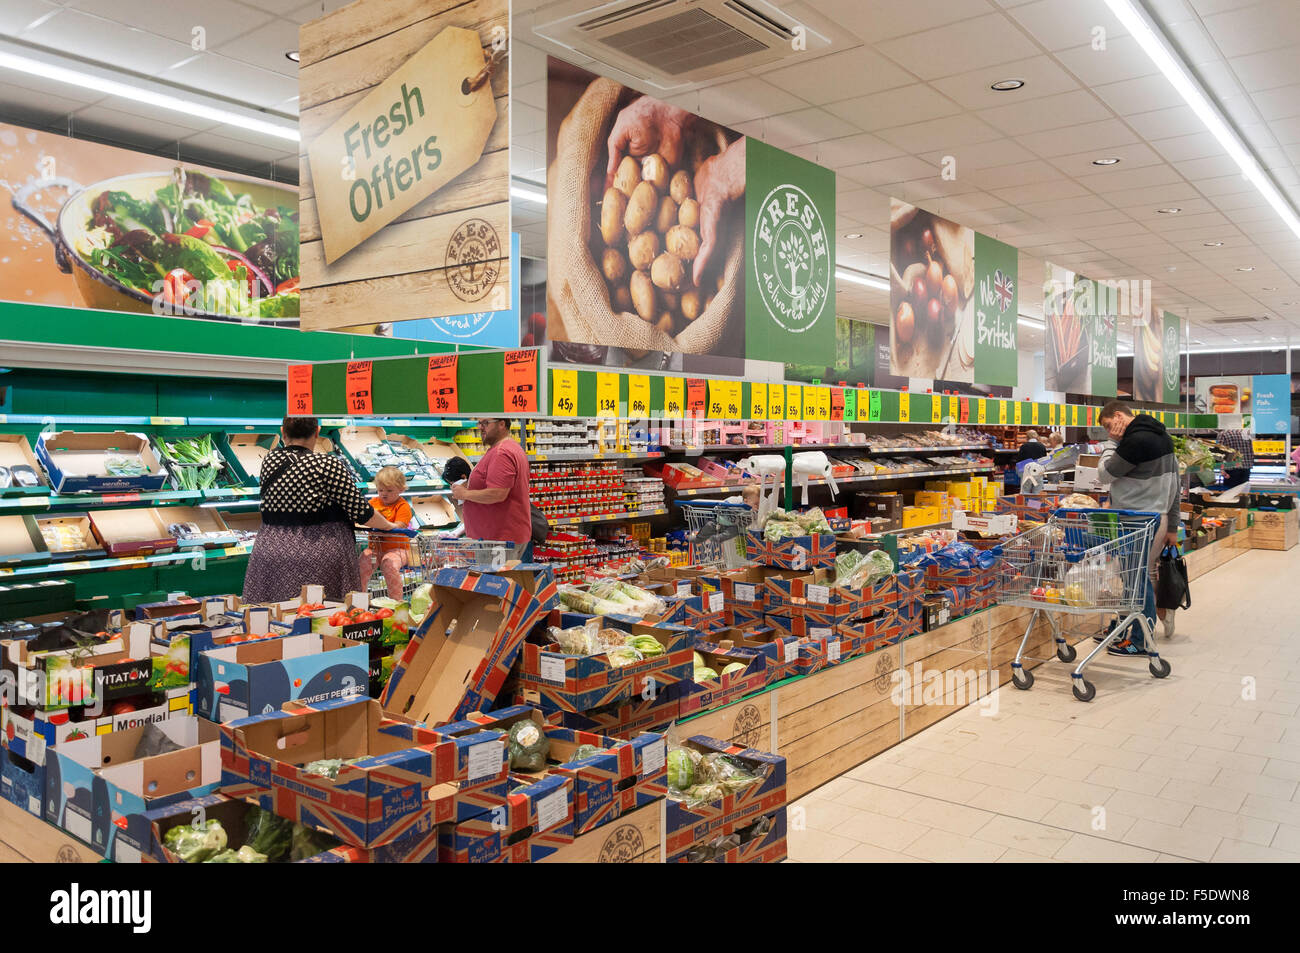 Interior of Lidl Supermarket, Sittingbourne, Kent, England, United Kingdom - Stock Image